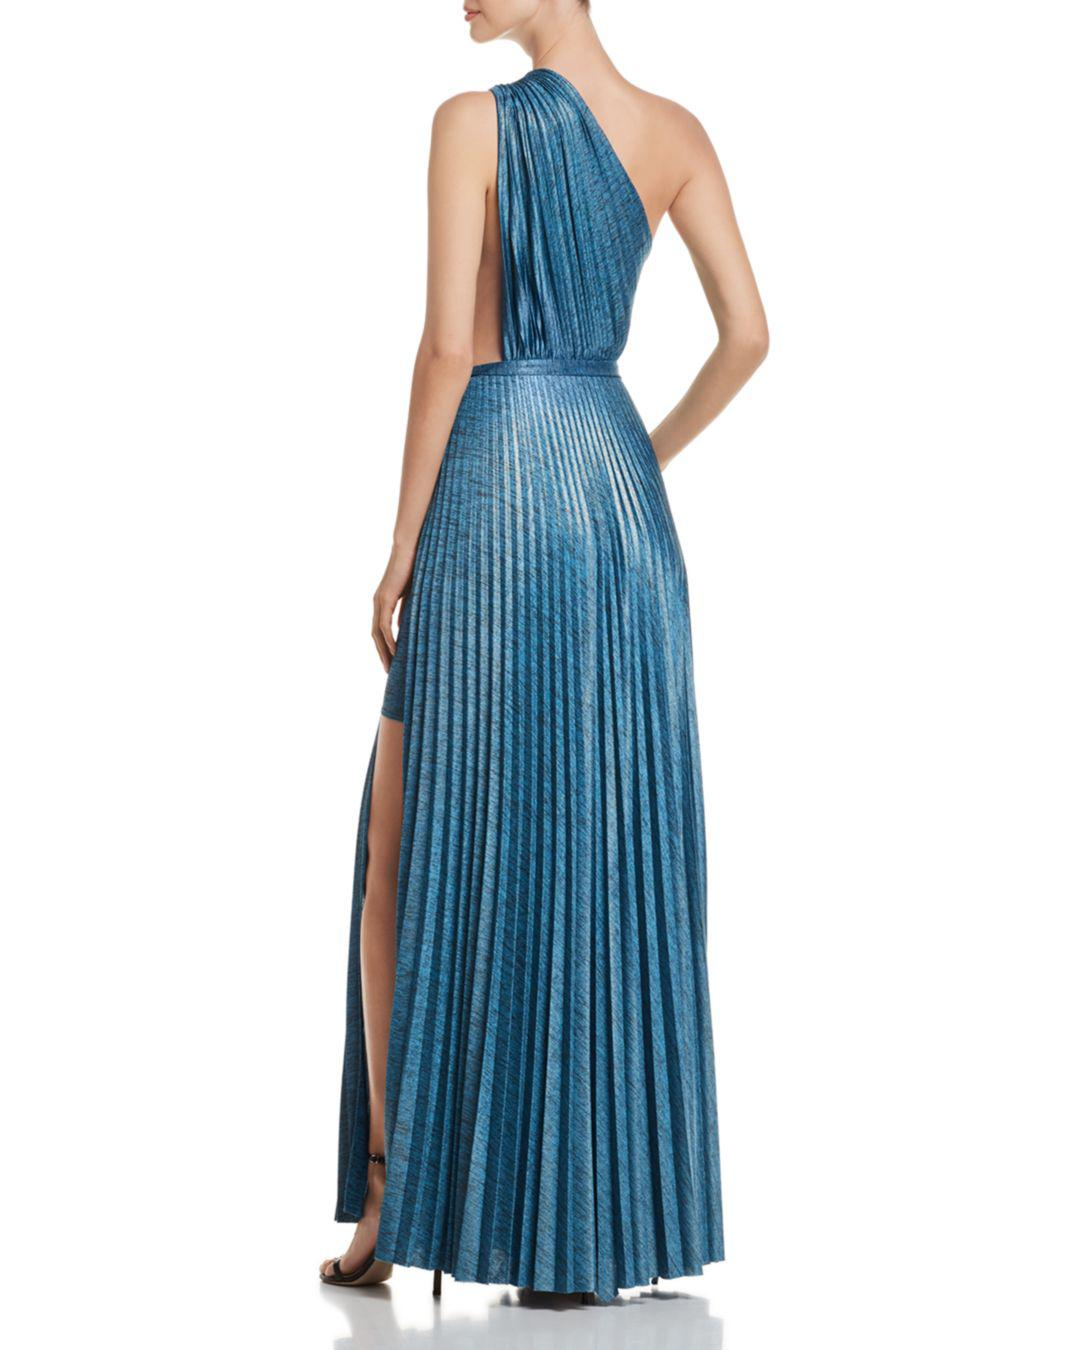 6dbe2b107a Elie Tahari Mistry Pleated One-shoulder Dress in Blue - Lyst